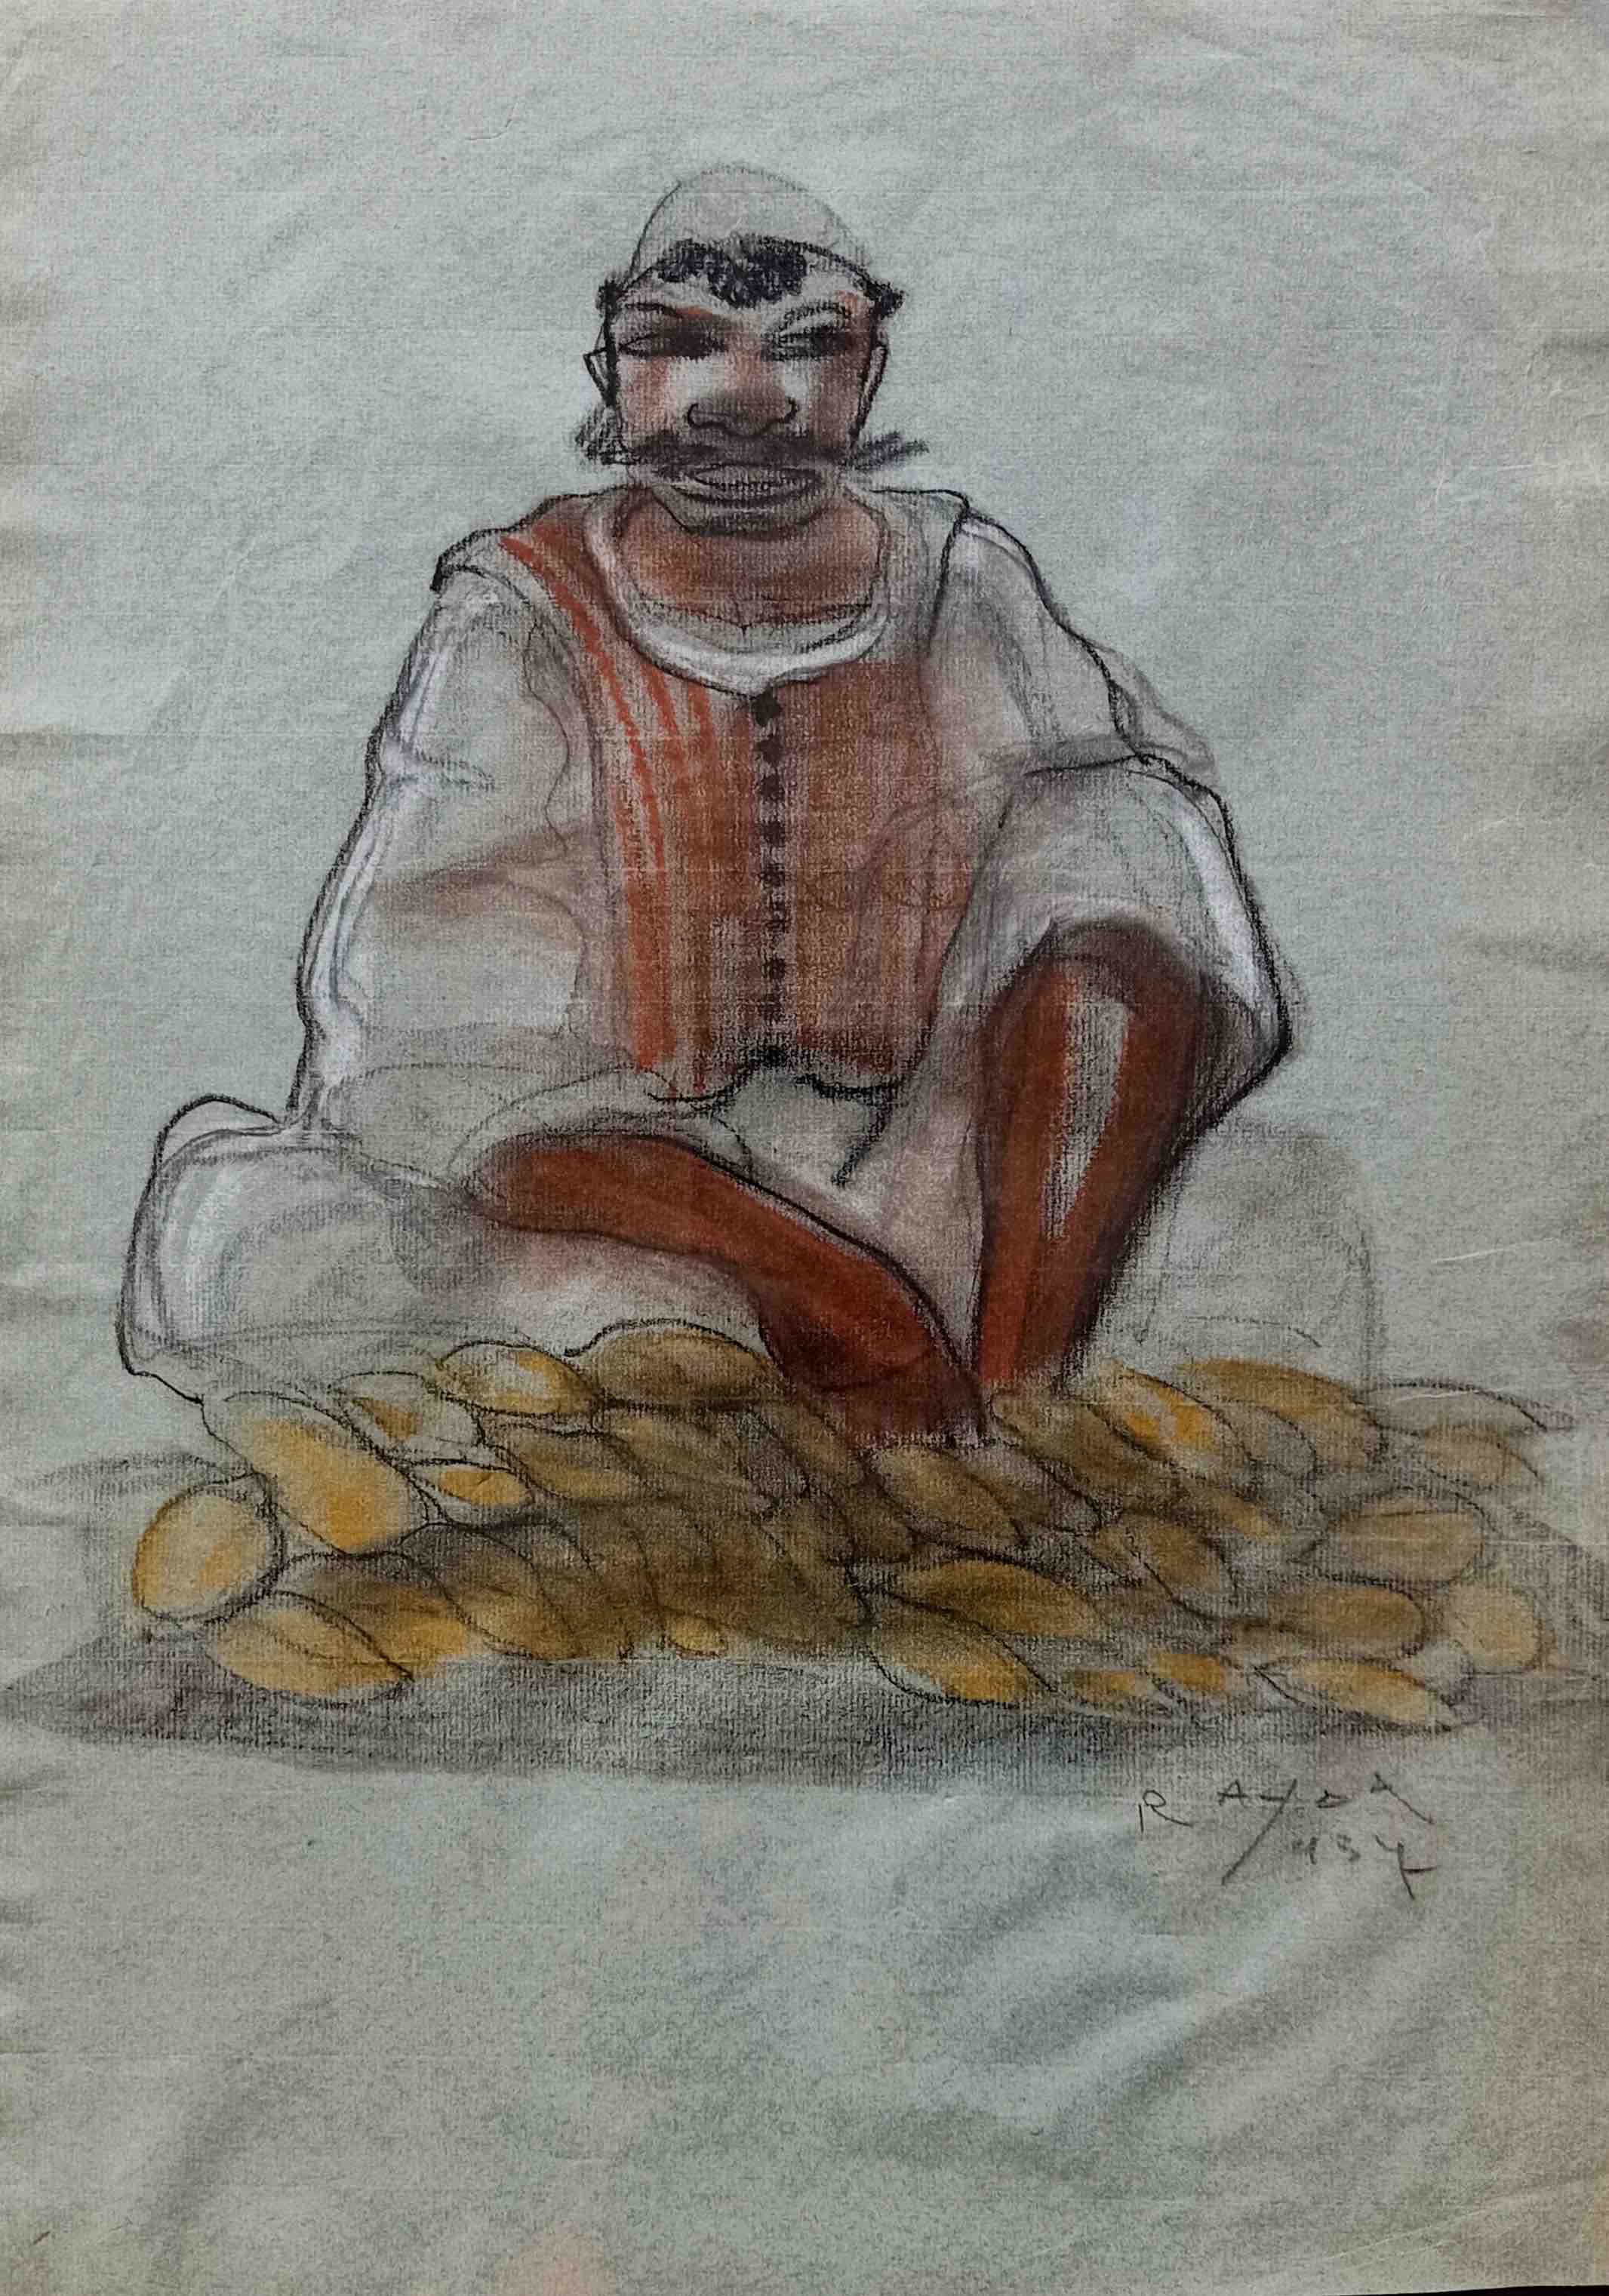 Ragheb Ayad, Vendeur de pain [Seller of Bread] 1937. Mixed media on thick  paper 45×32 cm Signed and dated bottom right.